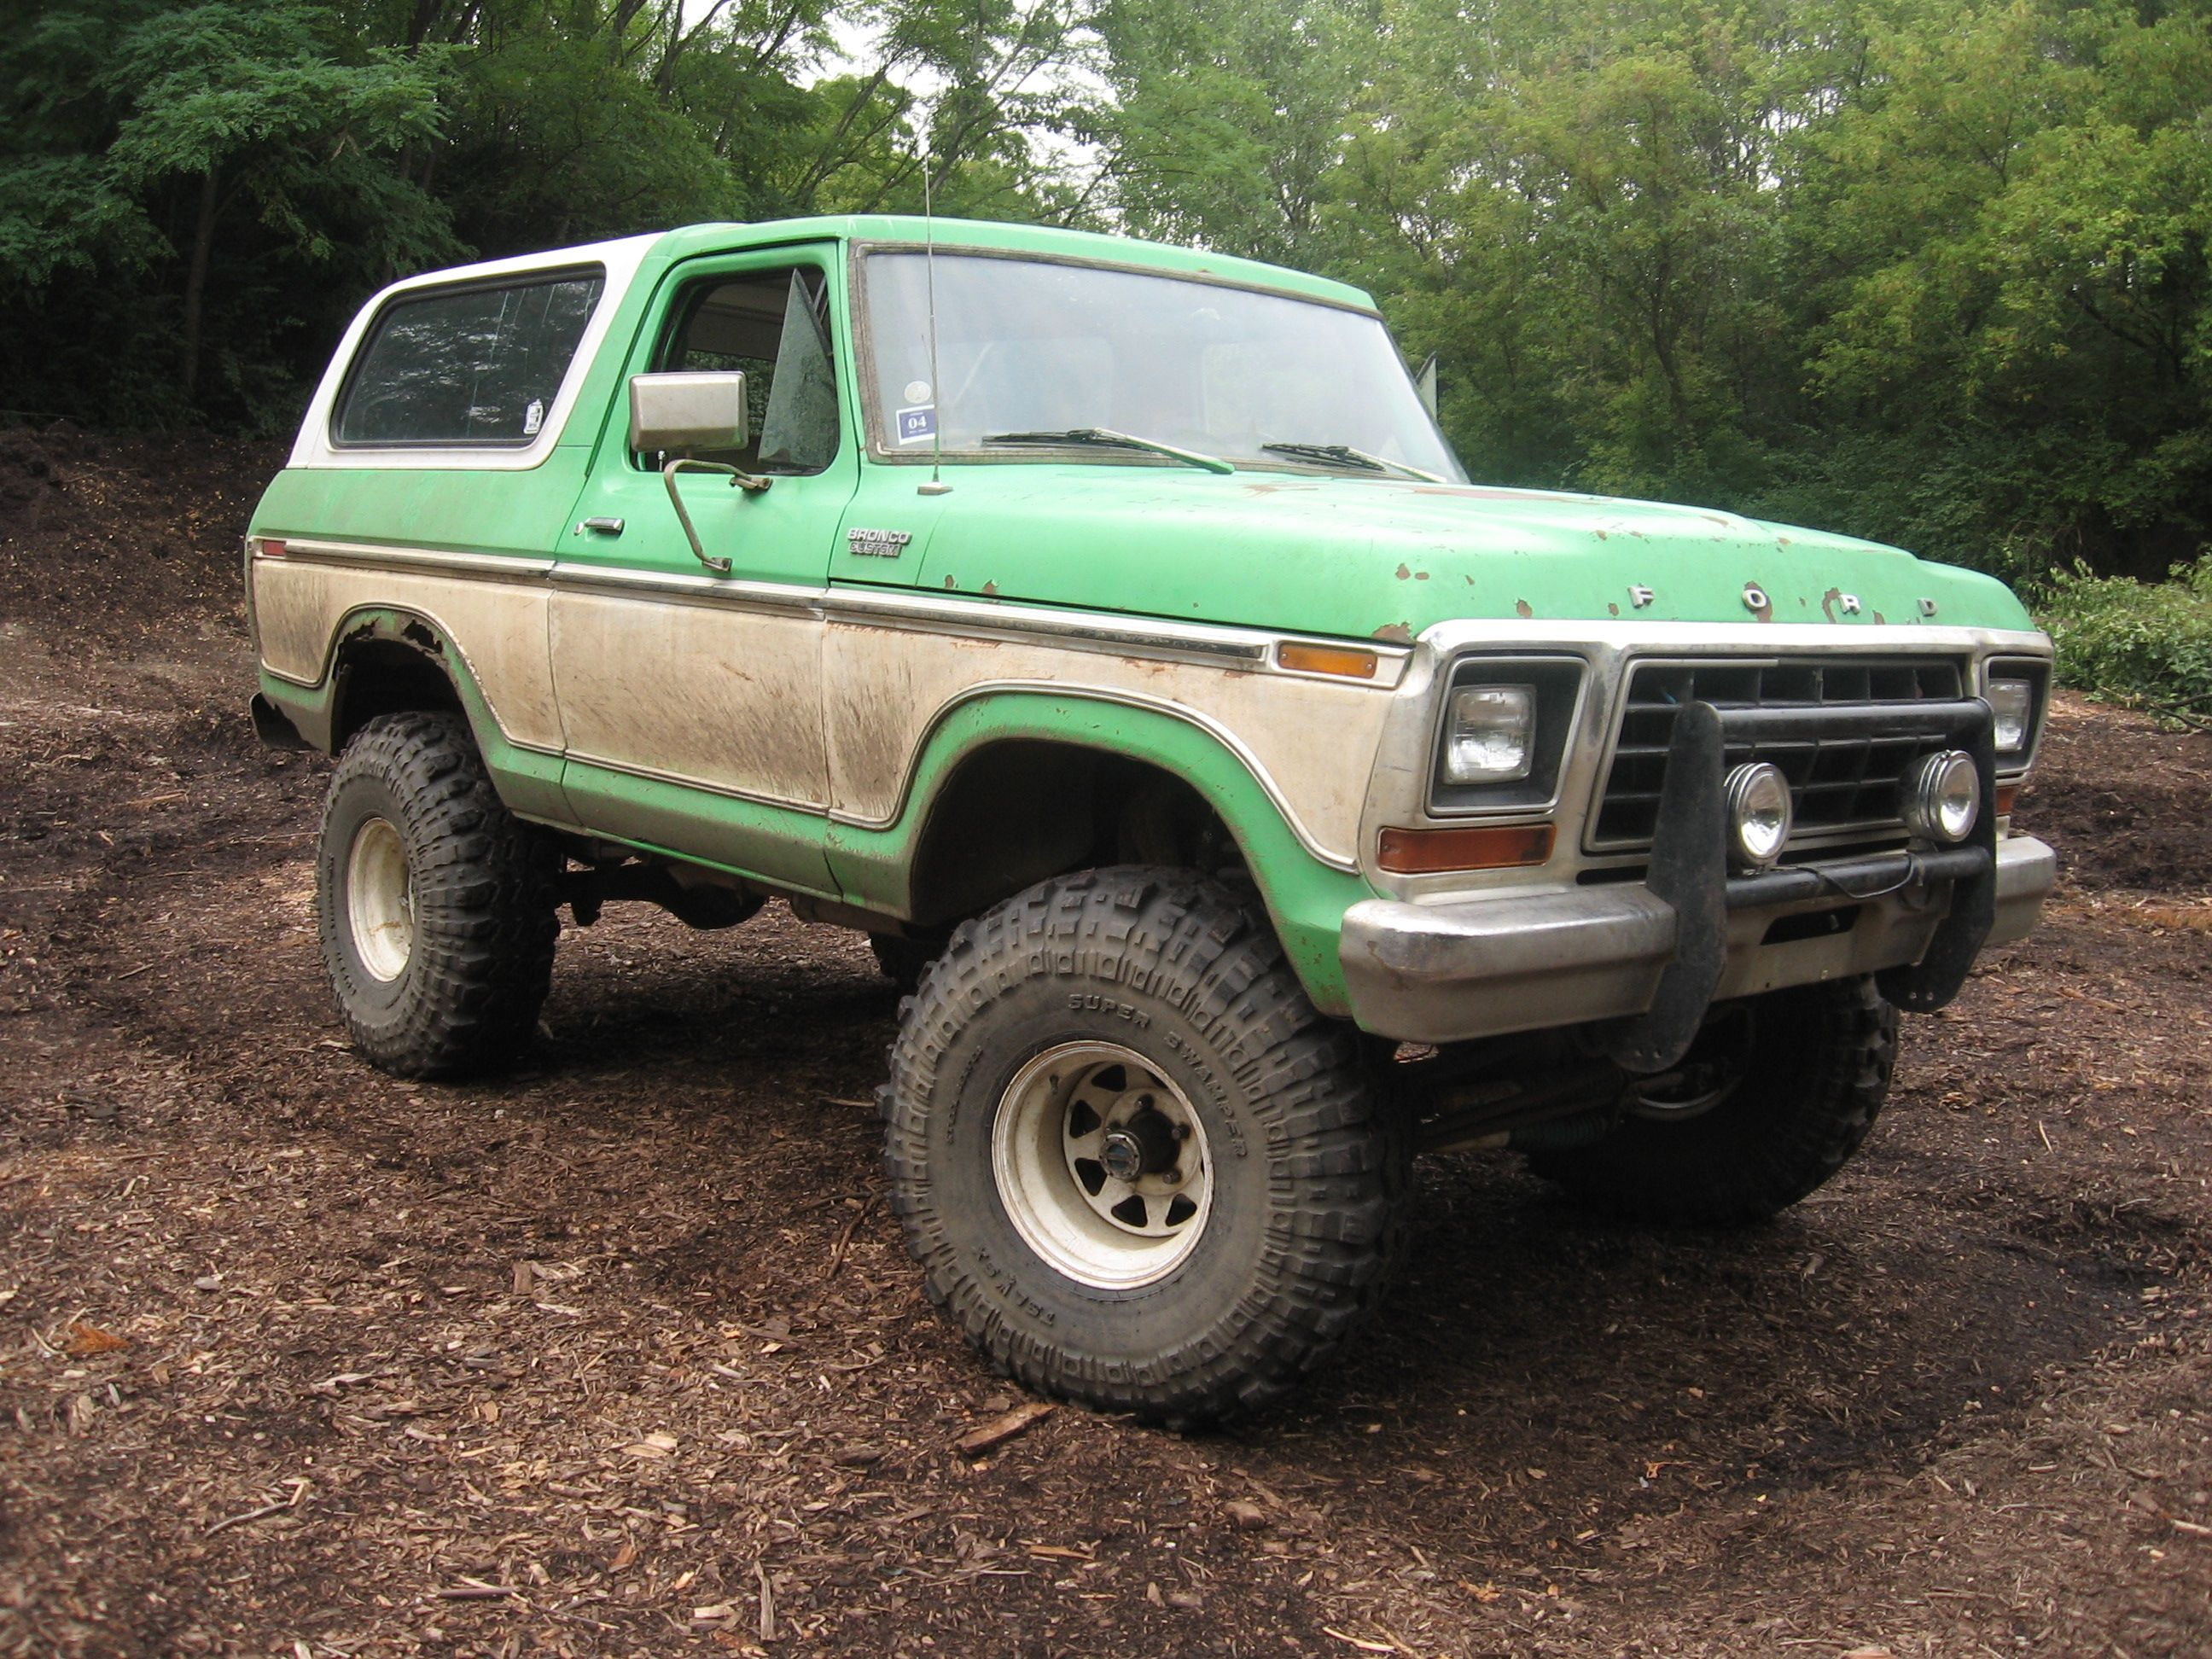 A Major Redesign In 1978 Moved The Bronco To A Larger Size